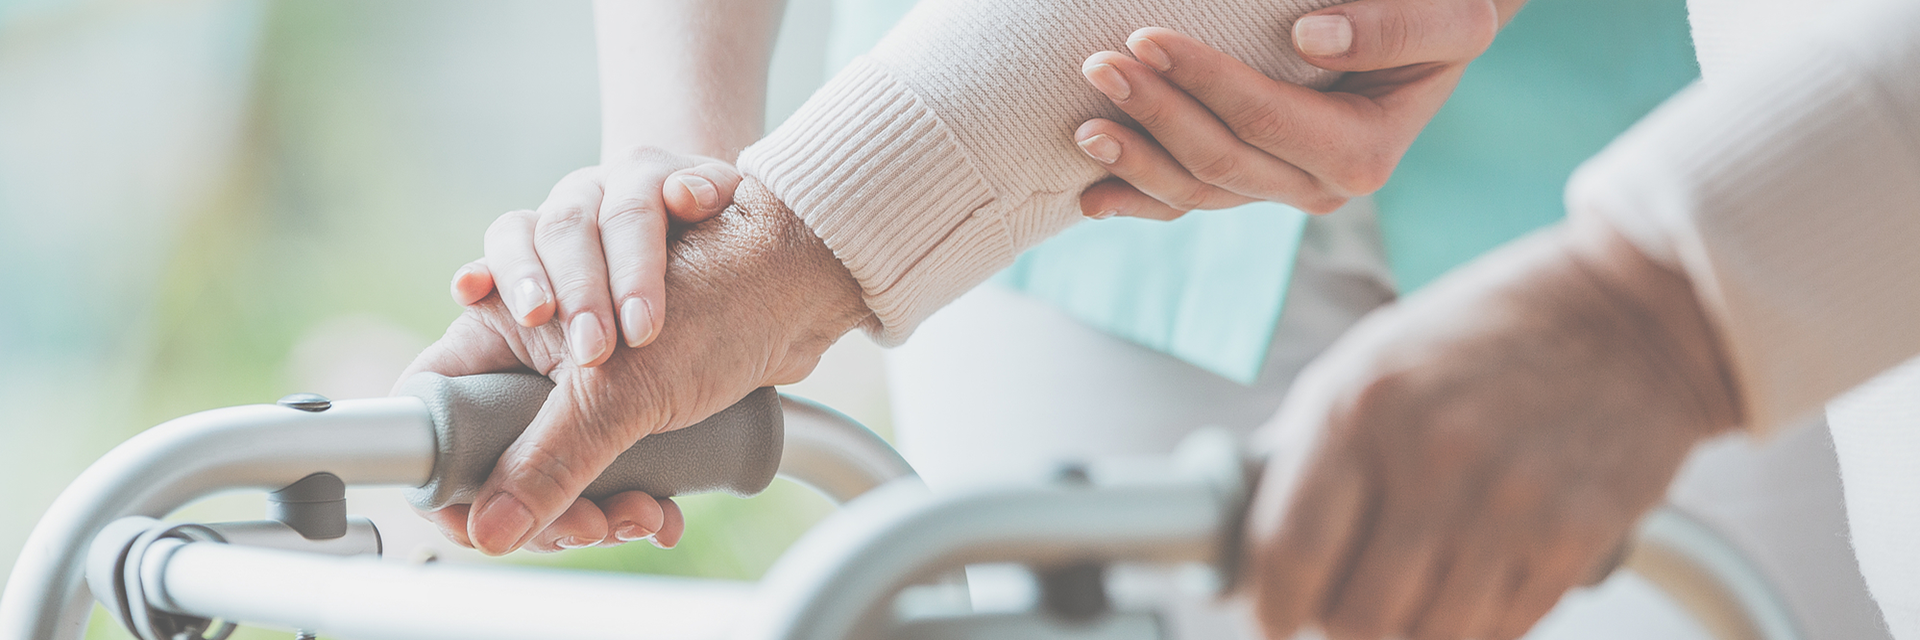 close up image of nurses hand assisting patient's hand on walker